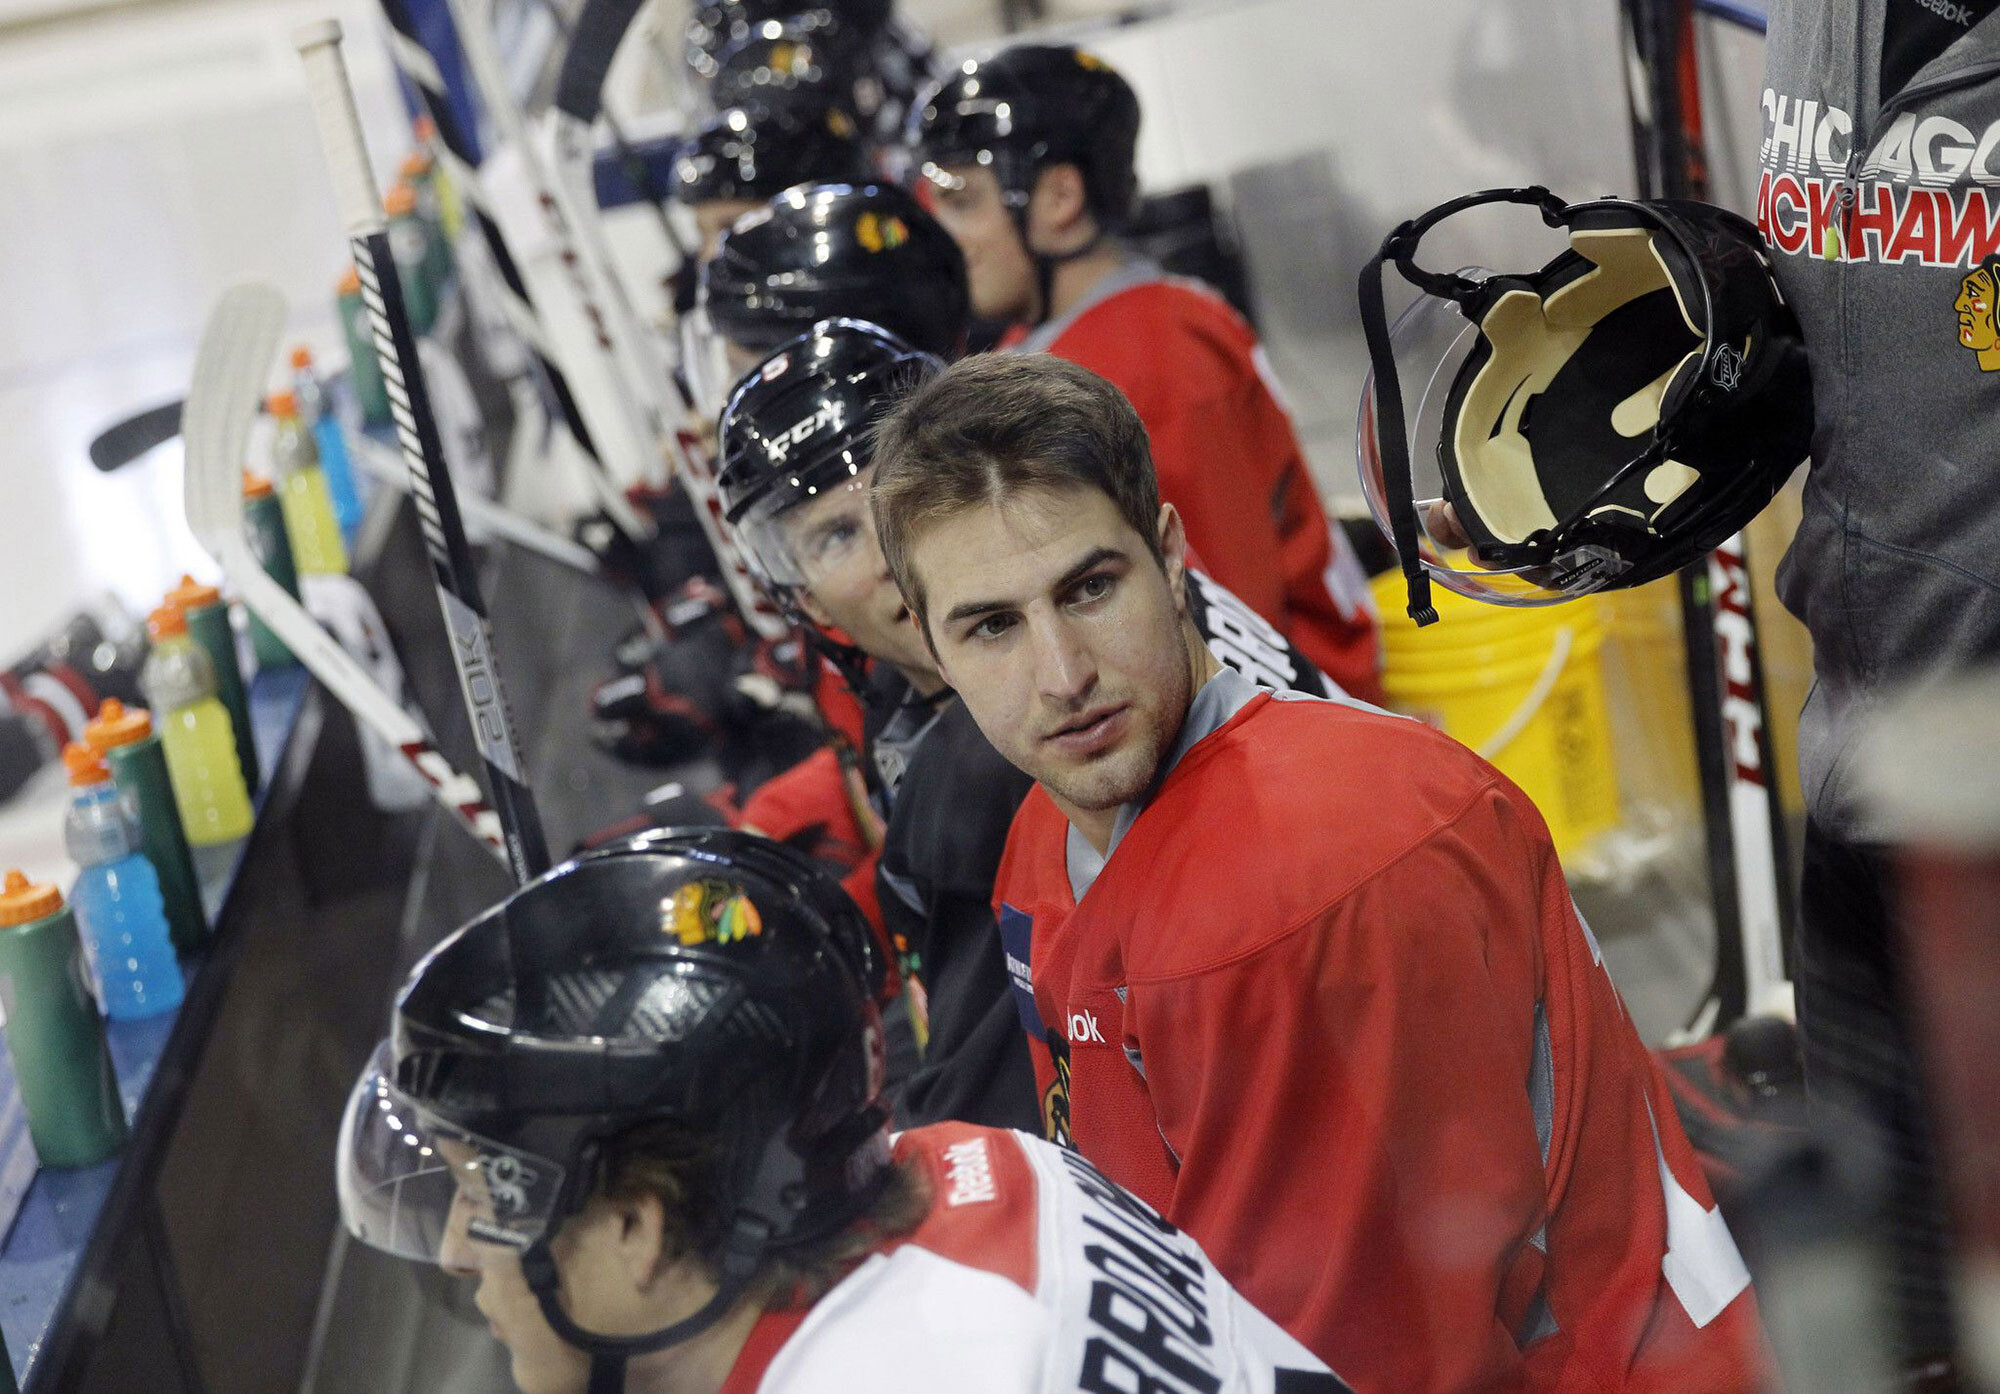 Hockey player who made sexual abuse allegation against former Blackhawks video coach speaks out